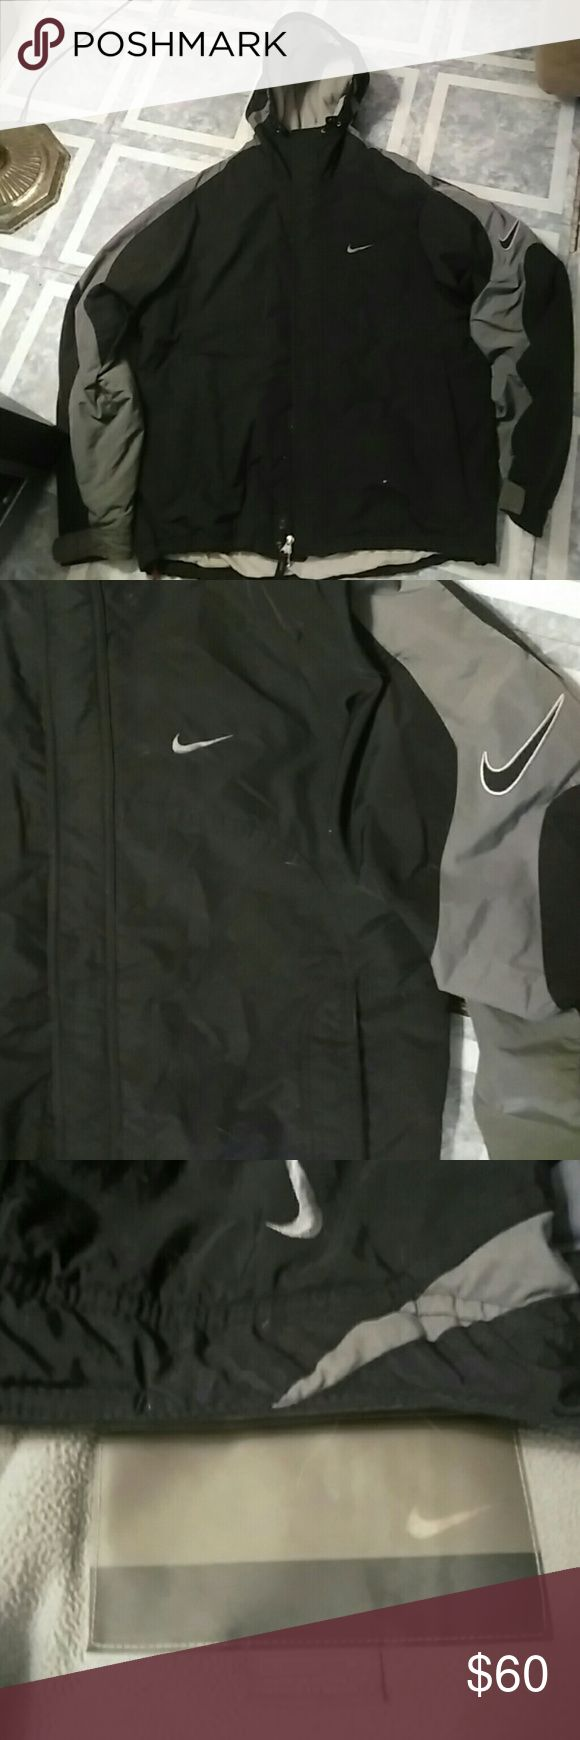 Black and Grey Nike Winter Jacket Like New Men's Medium size but I've had this forever, only worn on the more wet winter days when I was not able to wear my Faux Fur Coats as moisture always caused them to get a funky smell/feel to them. I love this coat but just way too big now to be of use wind blows up in it now so much room need to find something smaller but no hurry I've got like 7 winter coat.  I hate to see this guy go was a small fortune but can't sit on it forever!  I just love the…